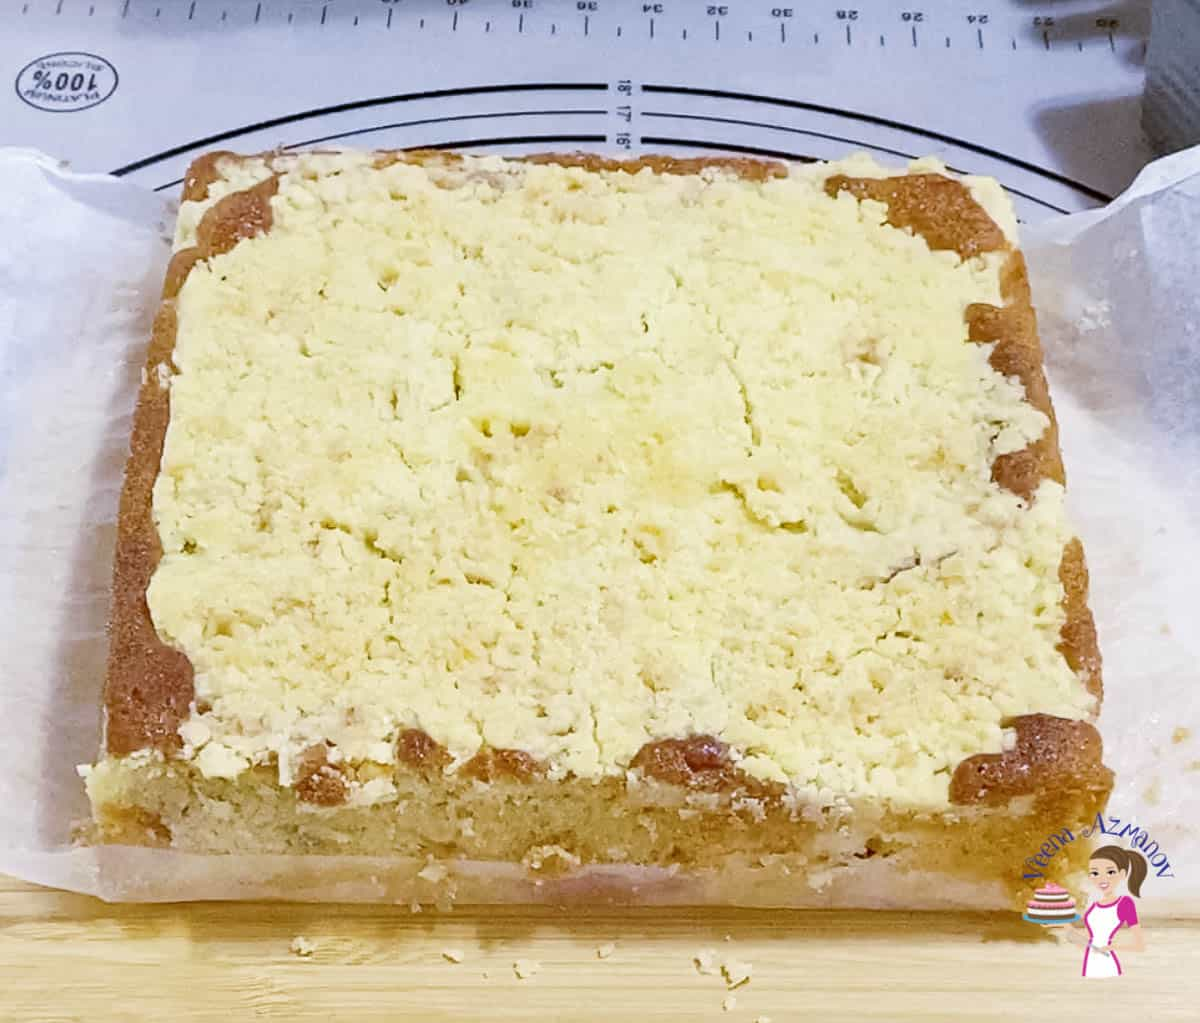 A coffee cake with peaches and crumble on a wooden board.